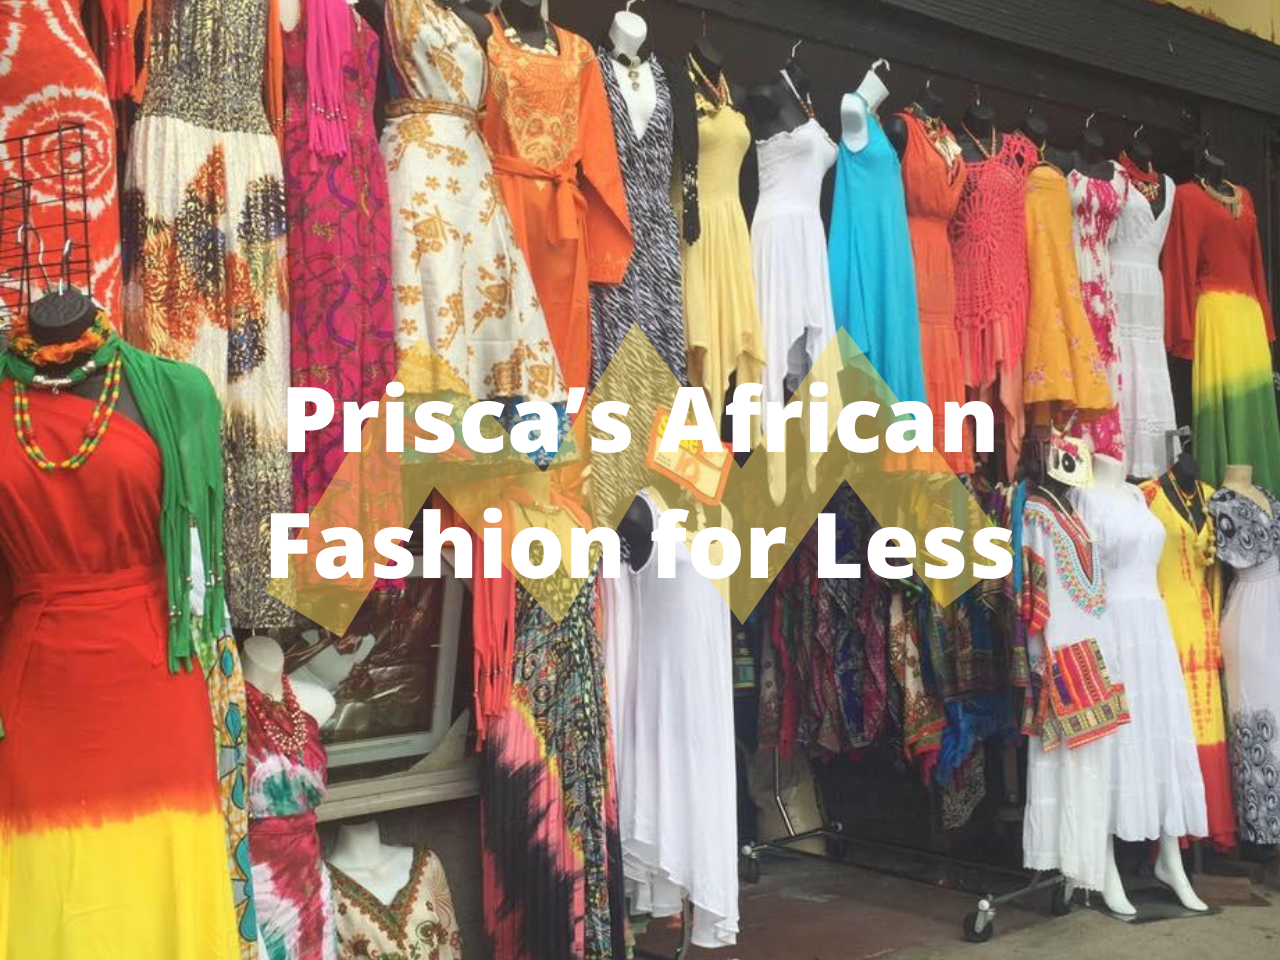 Prisca's African Fashion for Less